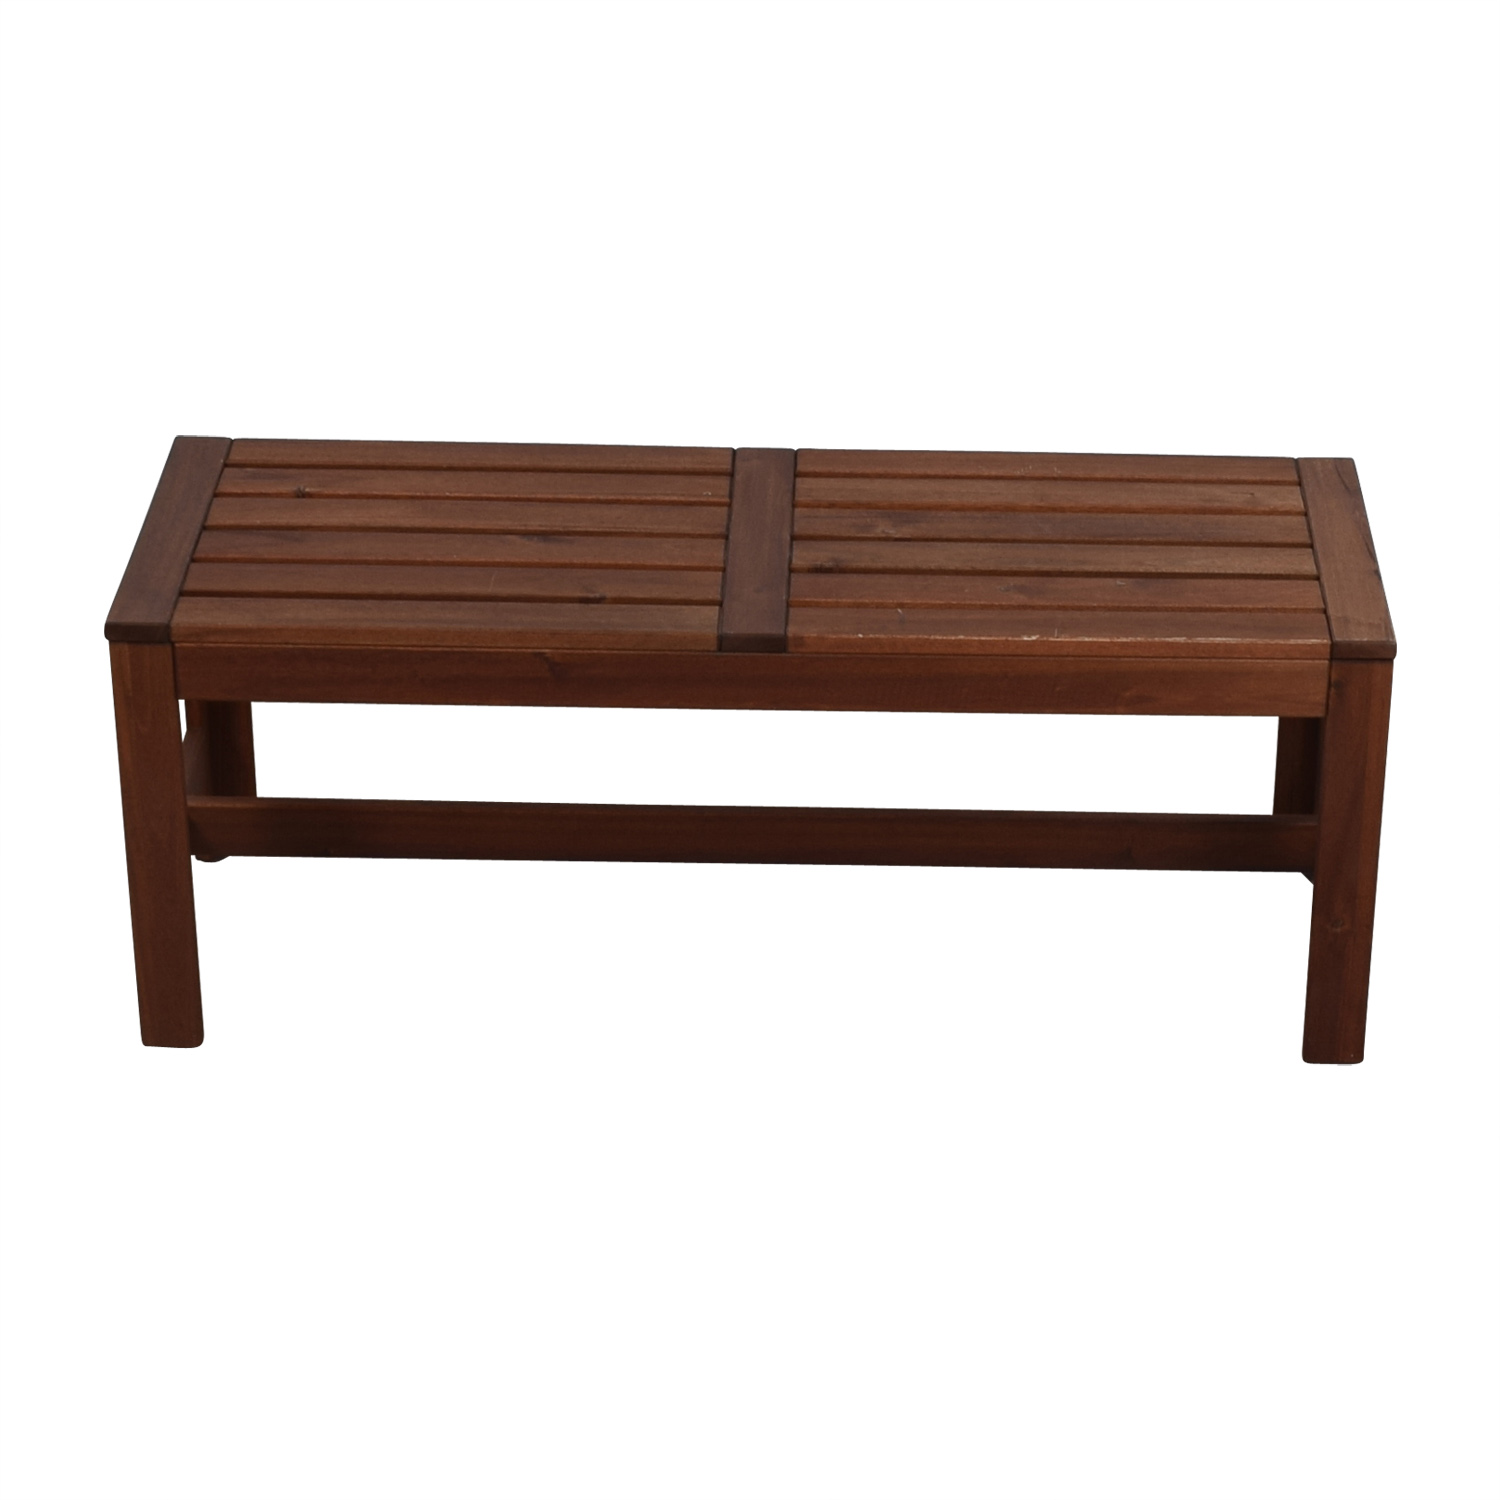 73 Off Downtown Furniture Wooden Bench Chairs